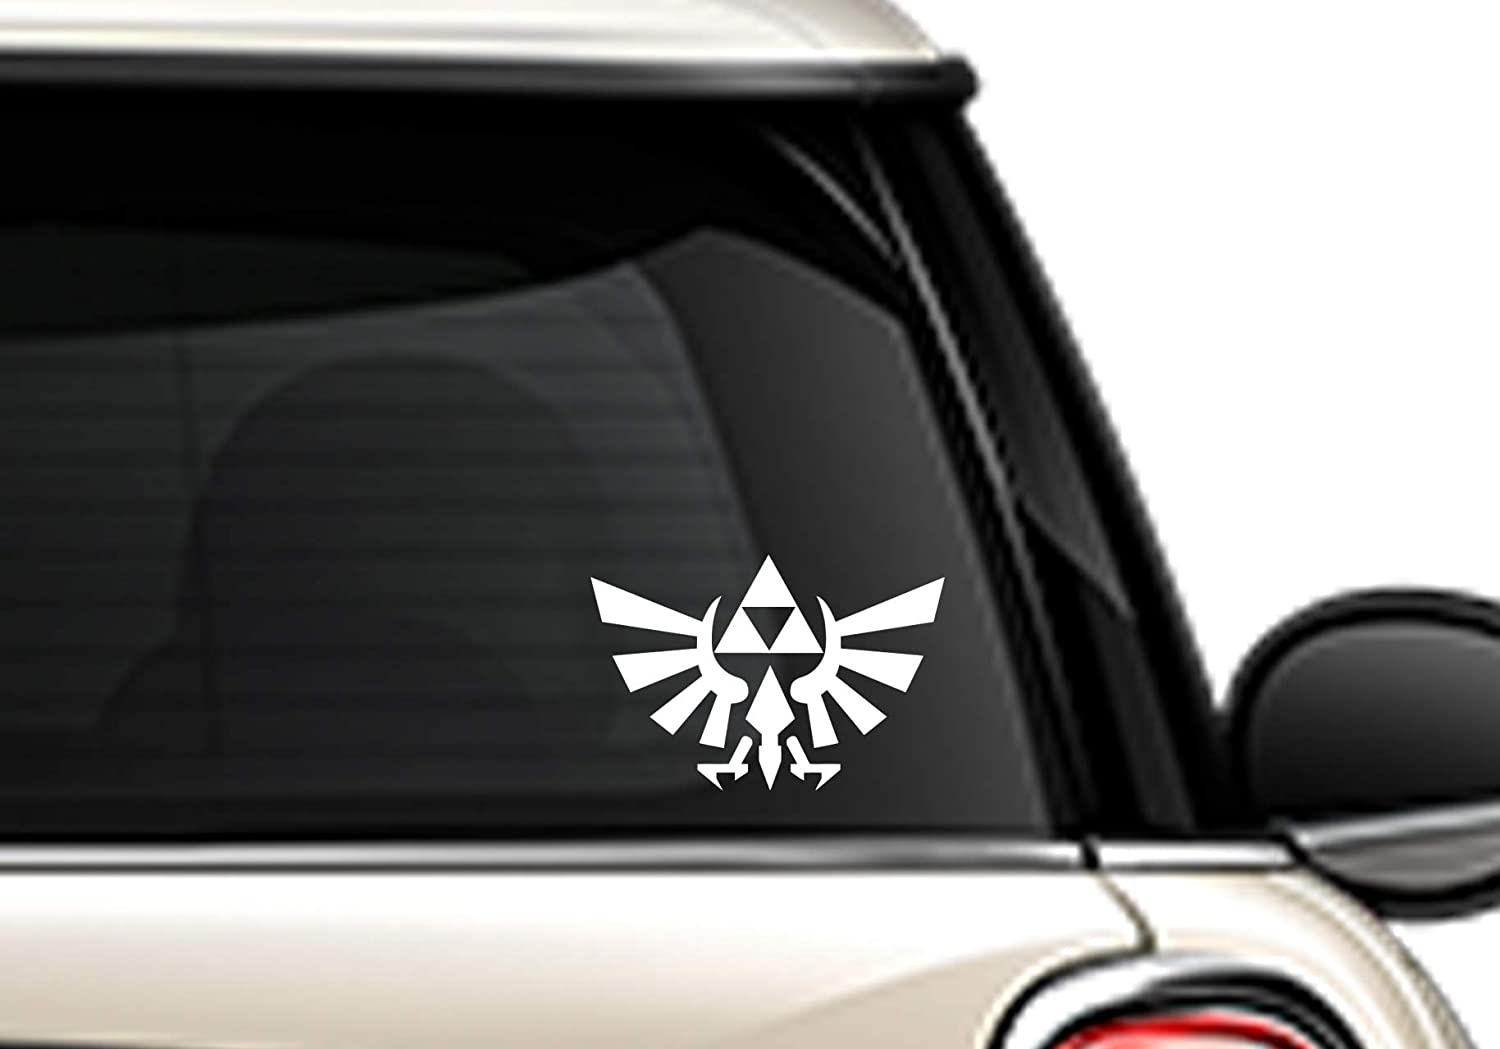 Legend of Zelda Automotive Decal//Bumper Sticker